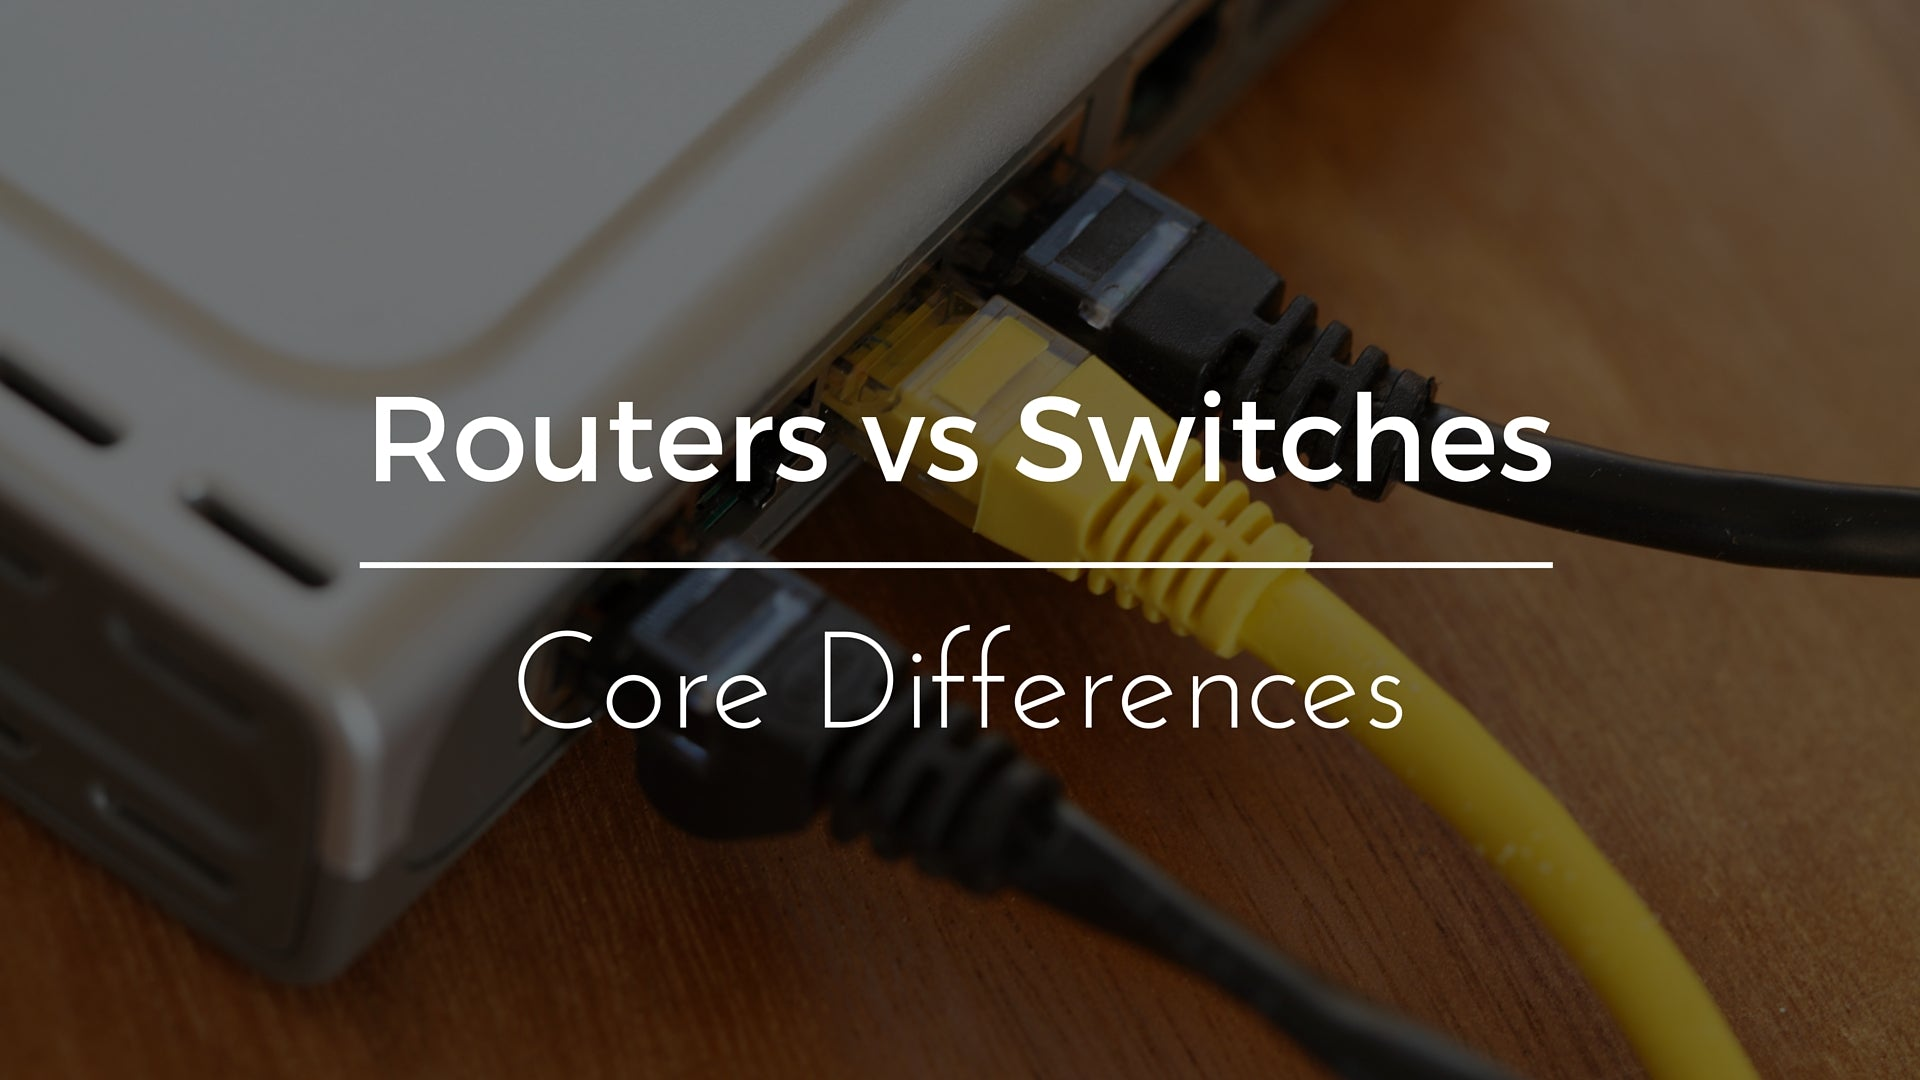 Routers vs Switches